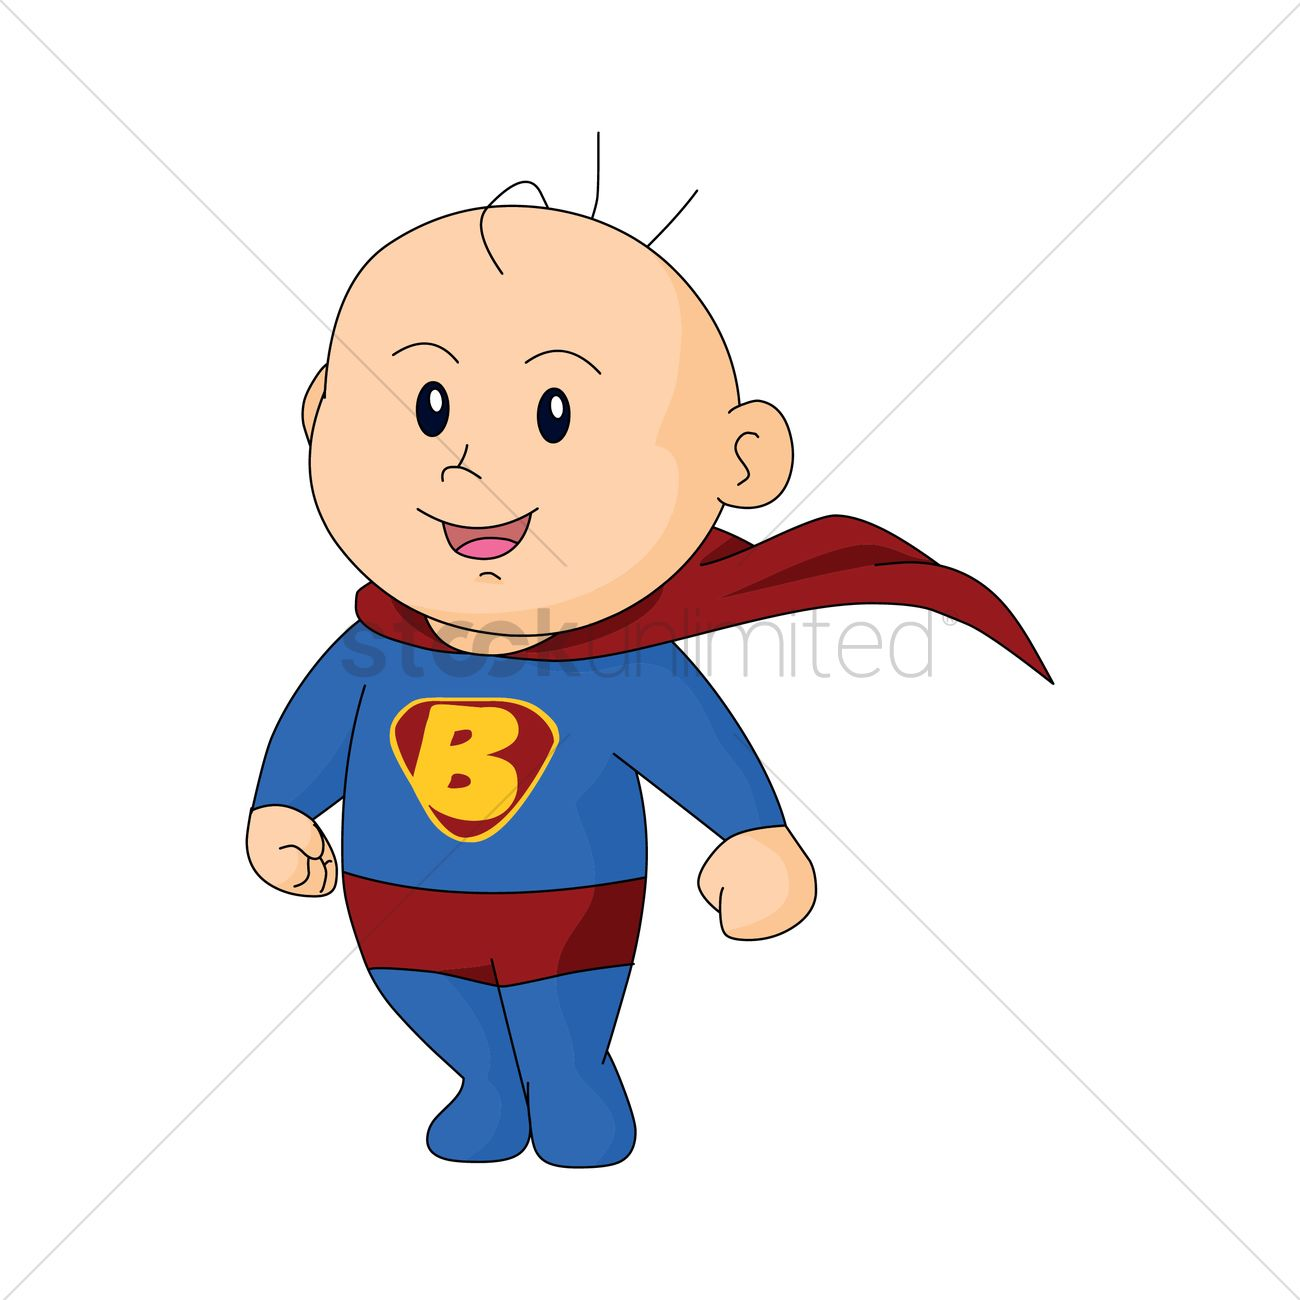 Included in this high quality gift basket are the following baby gifts: Superman Romper with Cape is adorable and soft, months Superman Socks are adorable and soft, months. Superheros Baby Book 1,2,3,A,B,C highlights our superheros, from Superman and Batman to Green Latern and Flash.